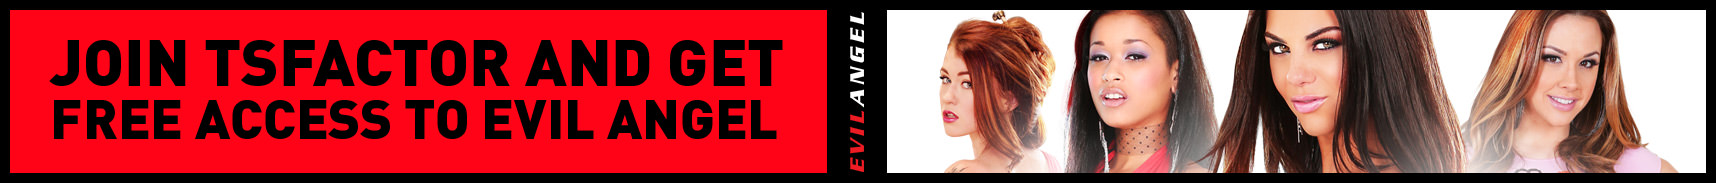 Join TS Factor and Get Free Access to Evil Angel!